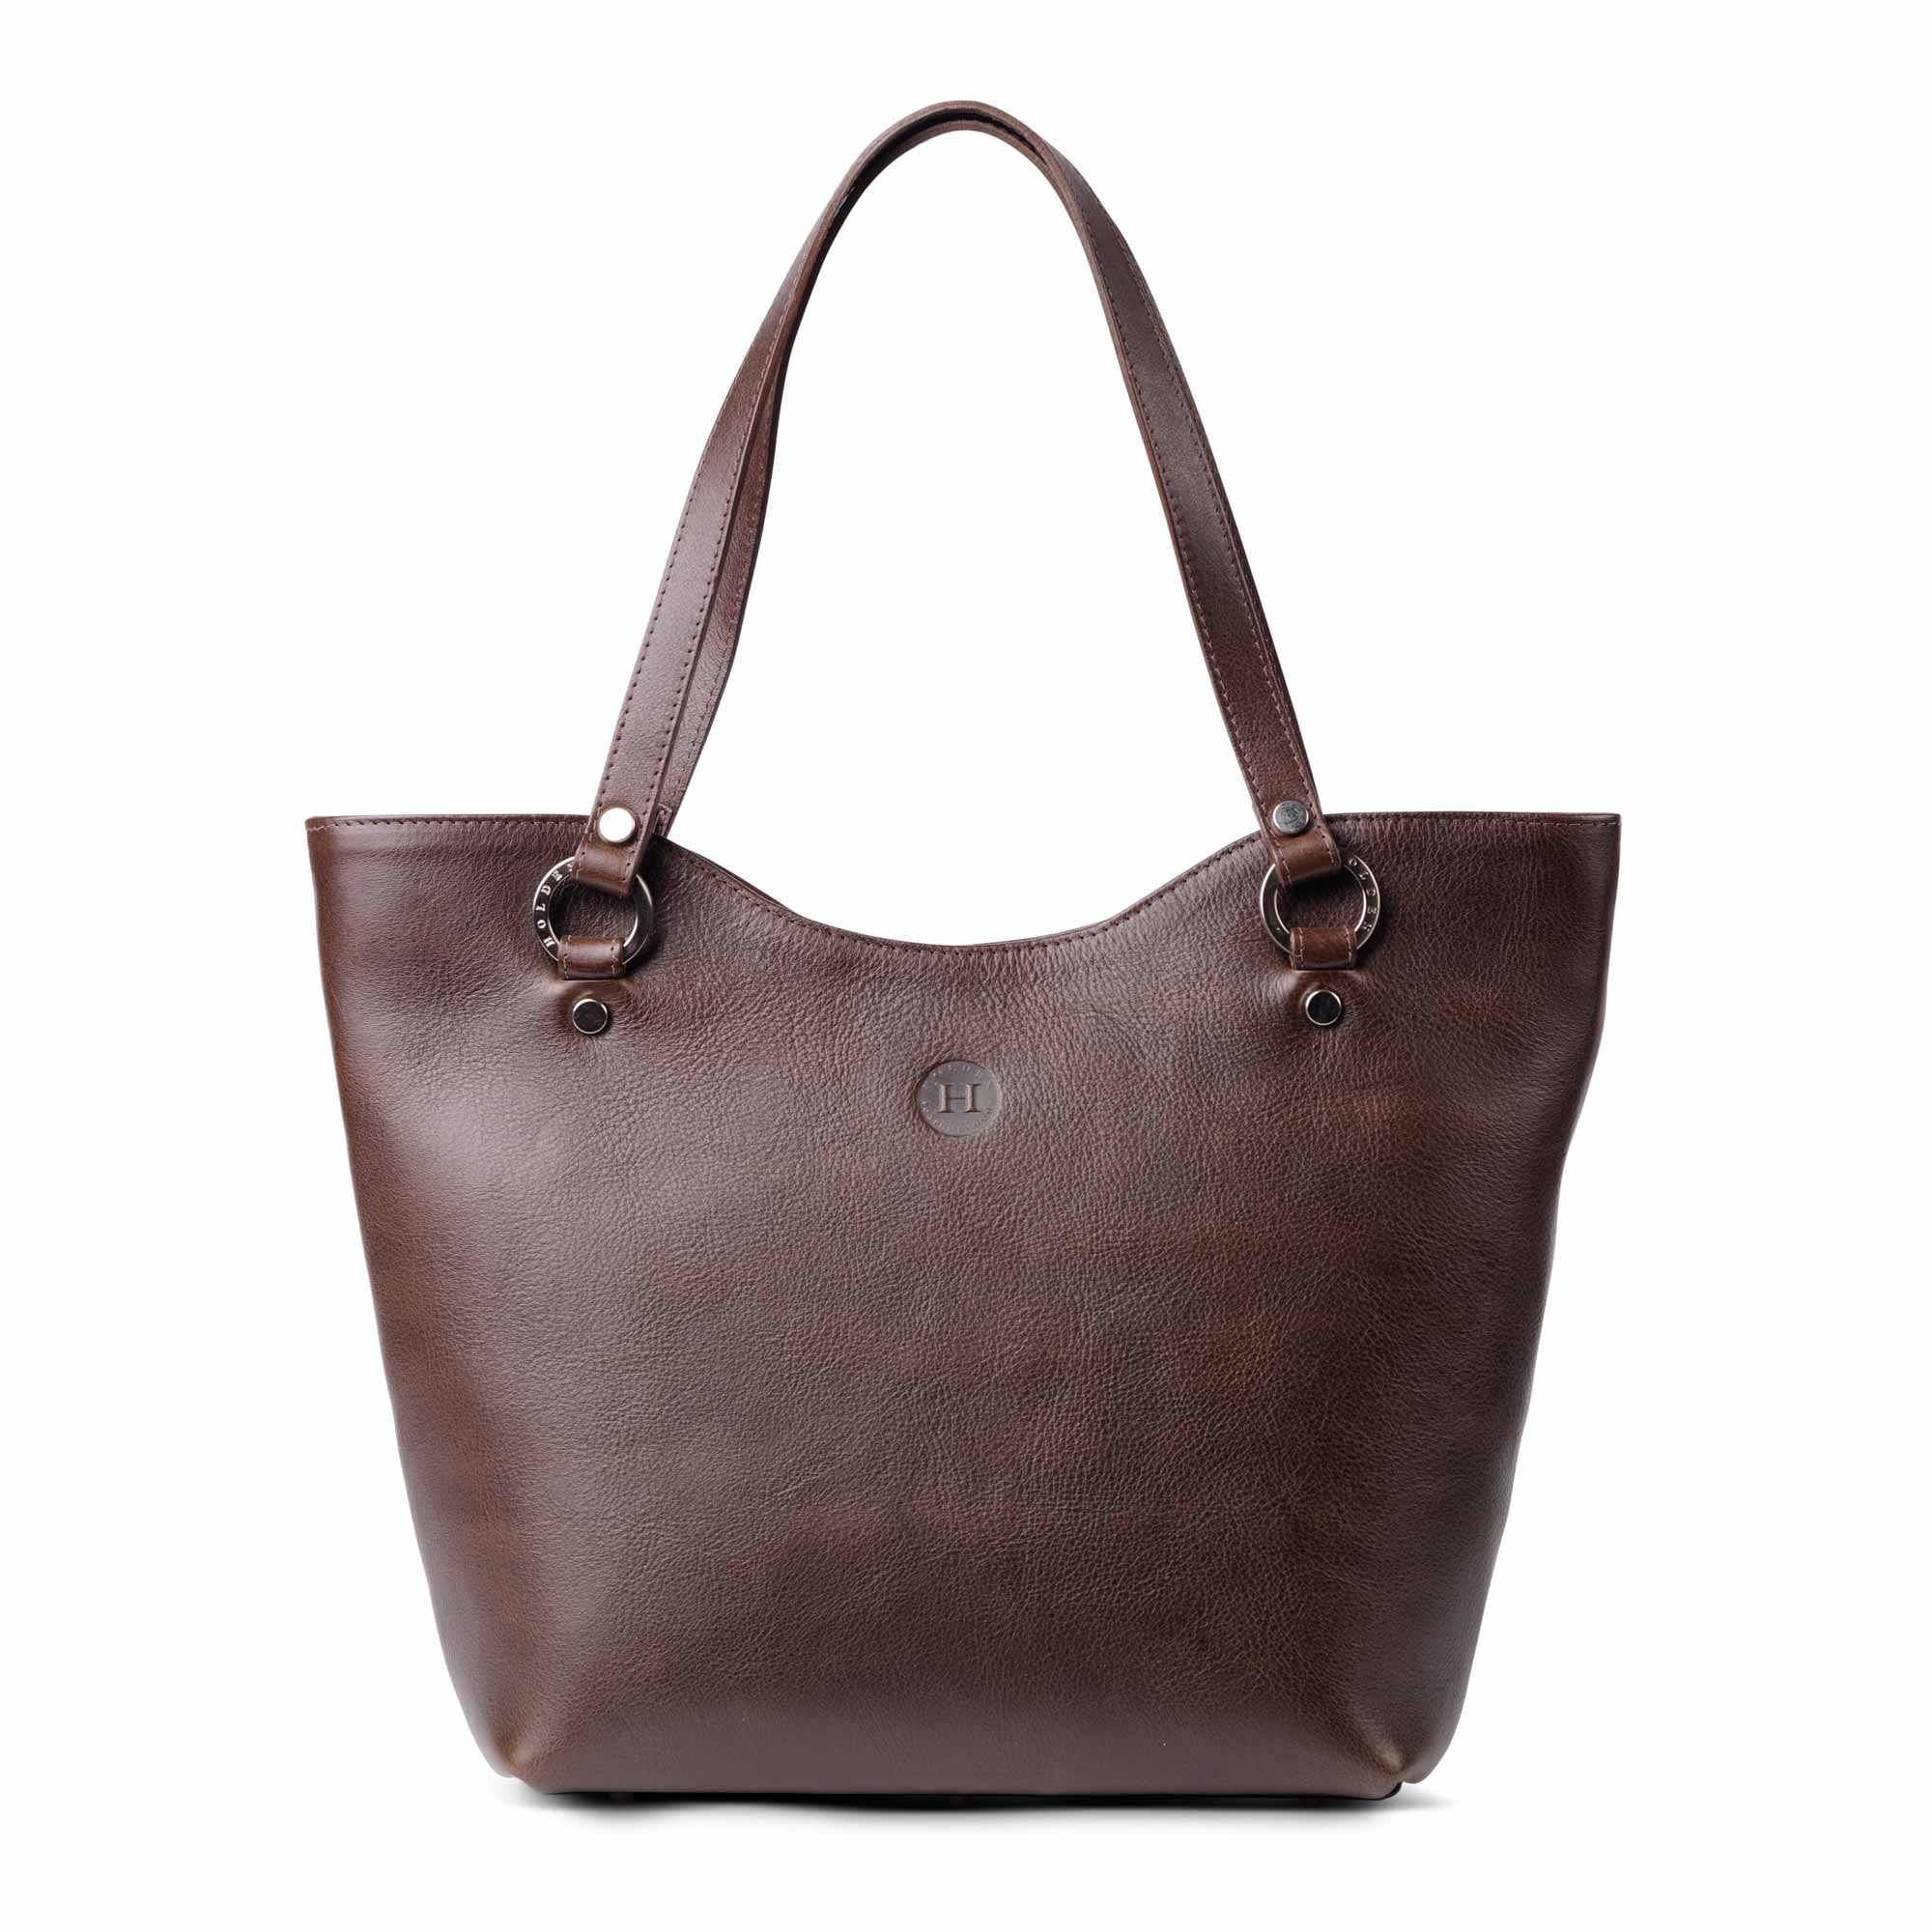 Caitlin Large Leather Tote Brown - Holden Leathergoods, leather bags handmade in Ireland